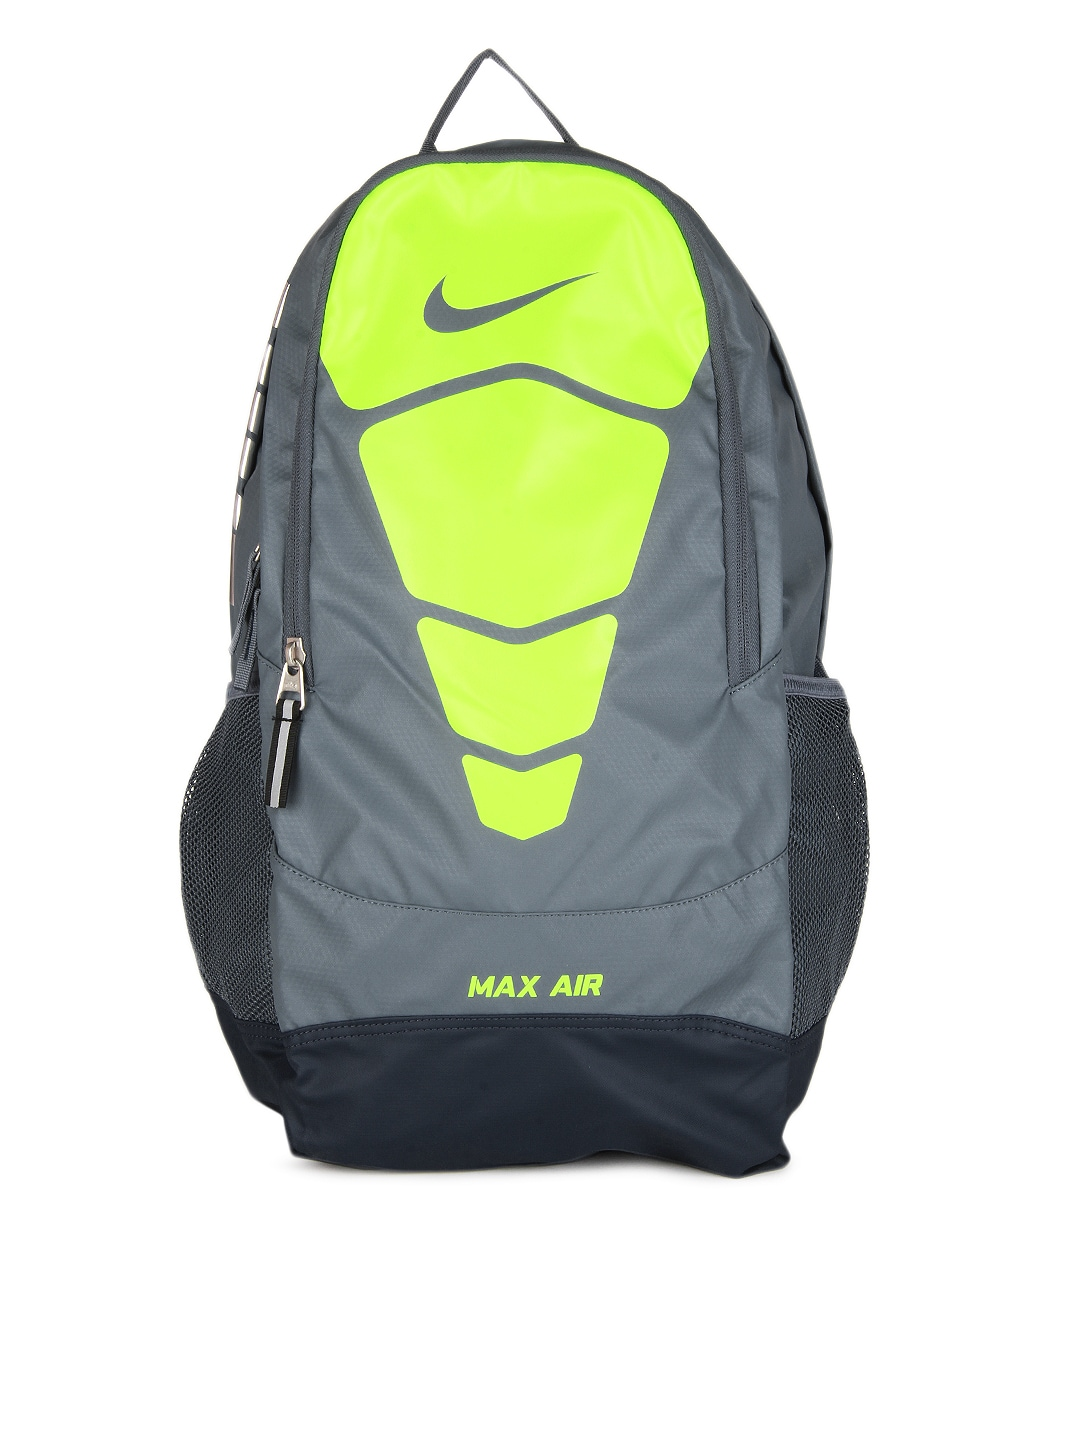 78e1cb088ae Nike ba4729-438 Unisex Grey Vapor Max Air Backpack - Best Price in ...